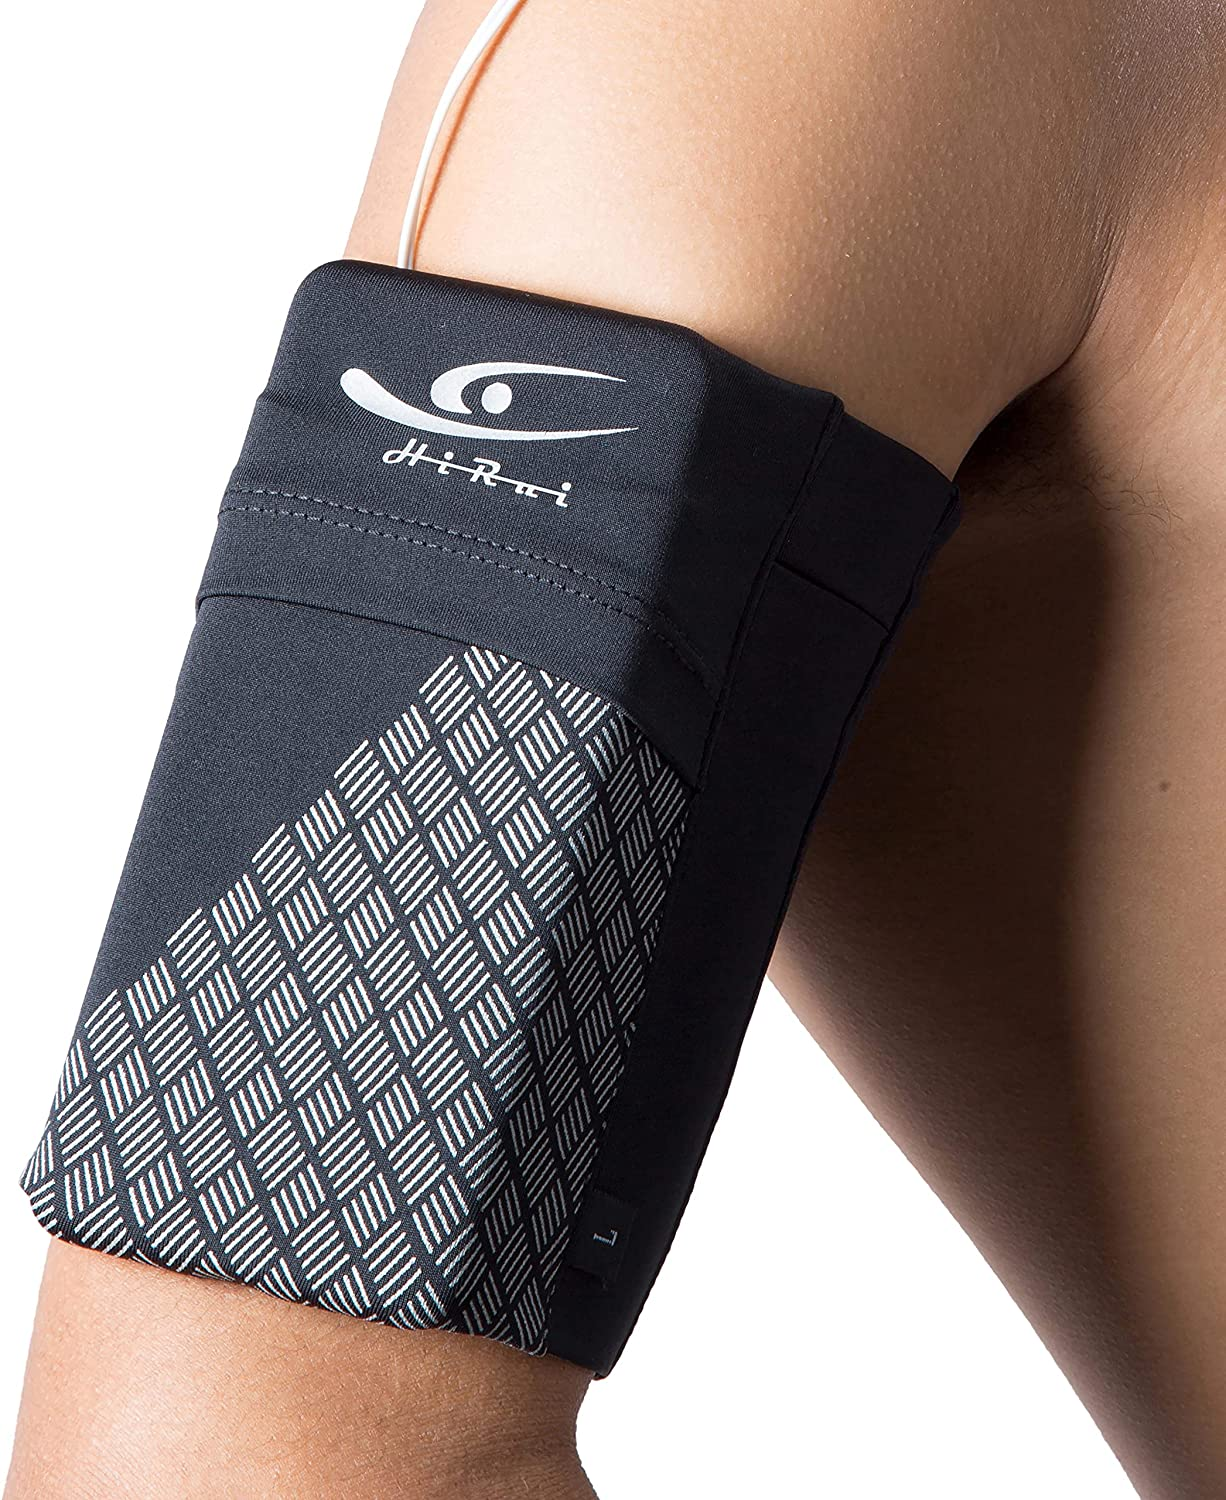 Limited Special Price Over item handling HiRui Universal Comfort Sports Armband Phone Cell Runnin